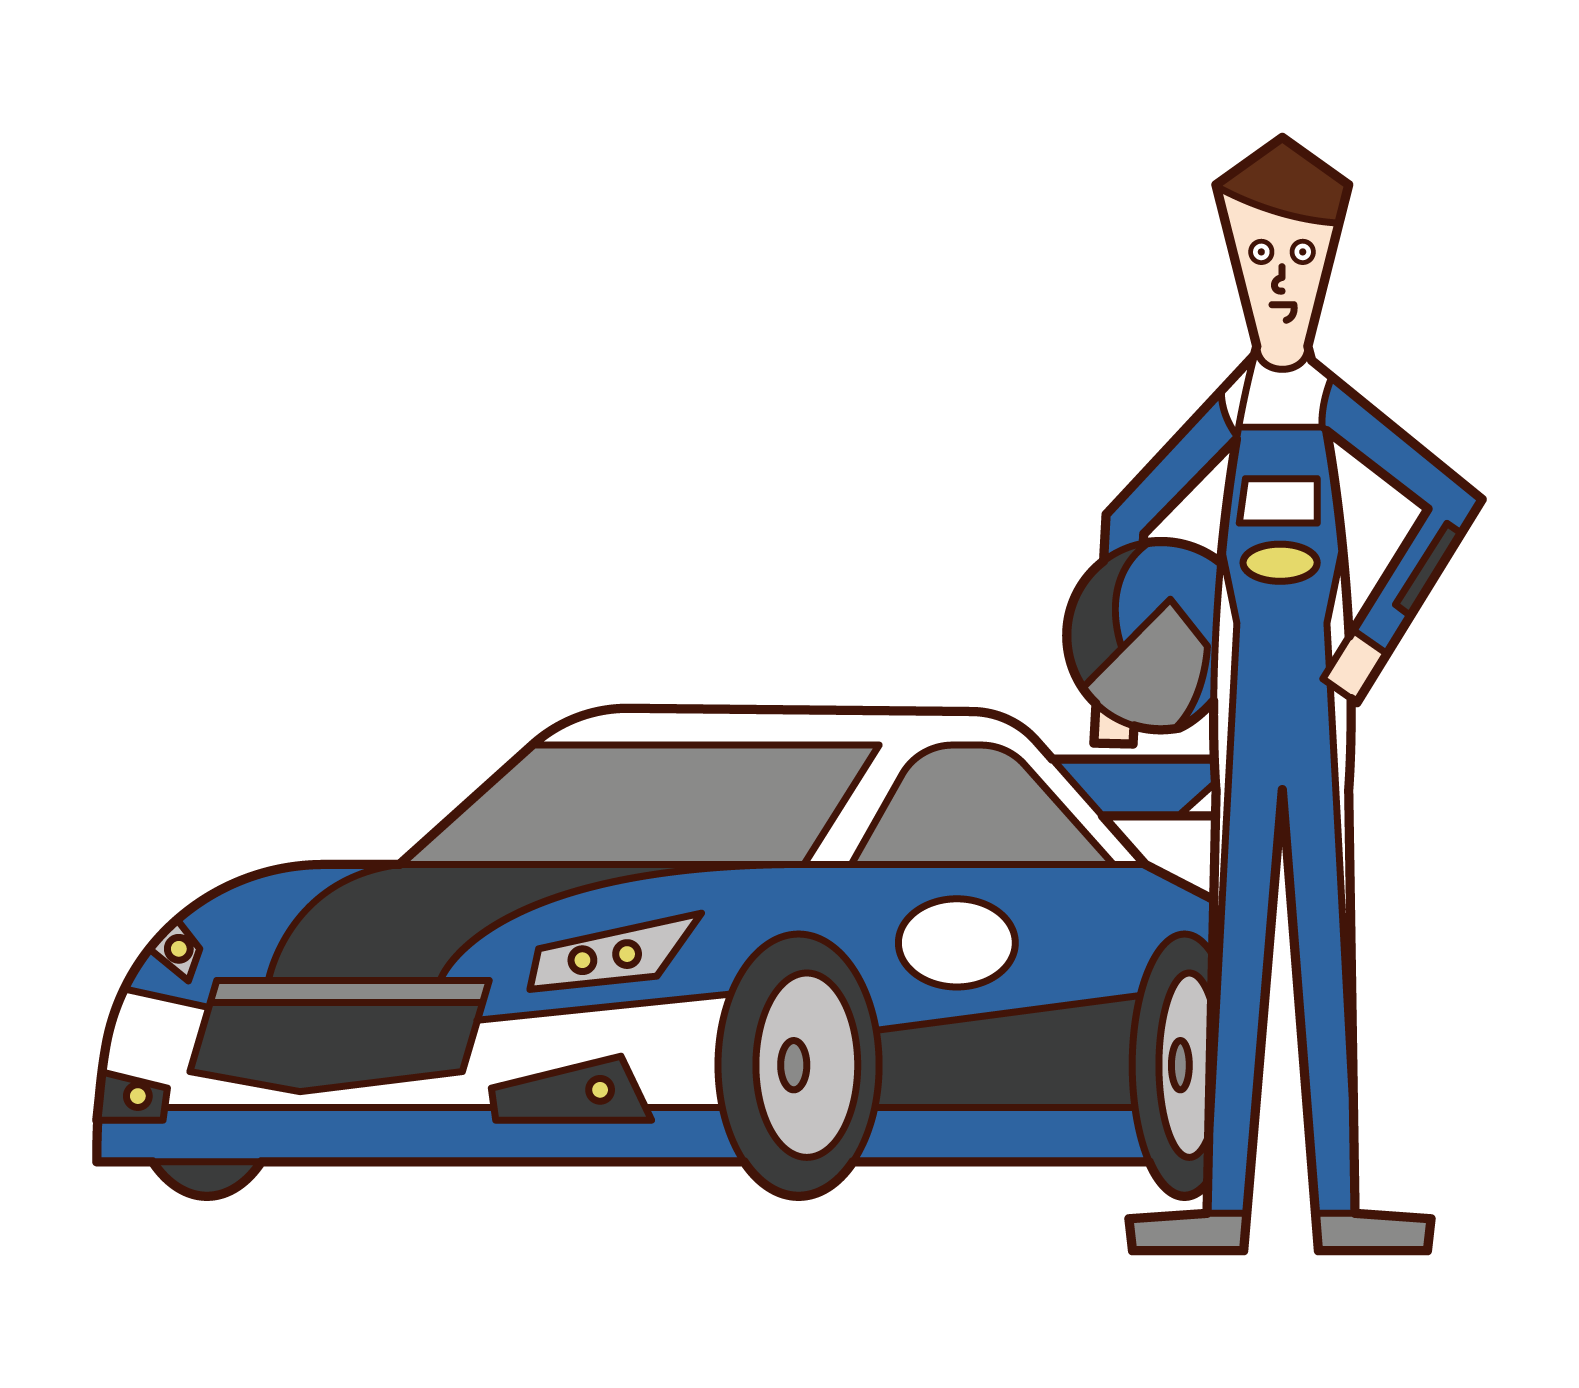 Illustration of Car Racer Motor Racer (man)